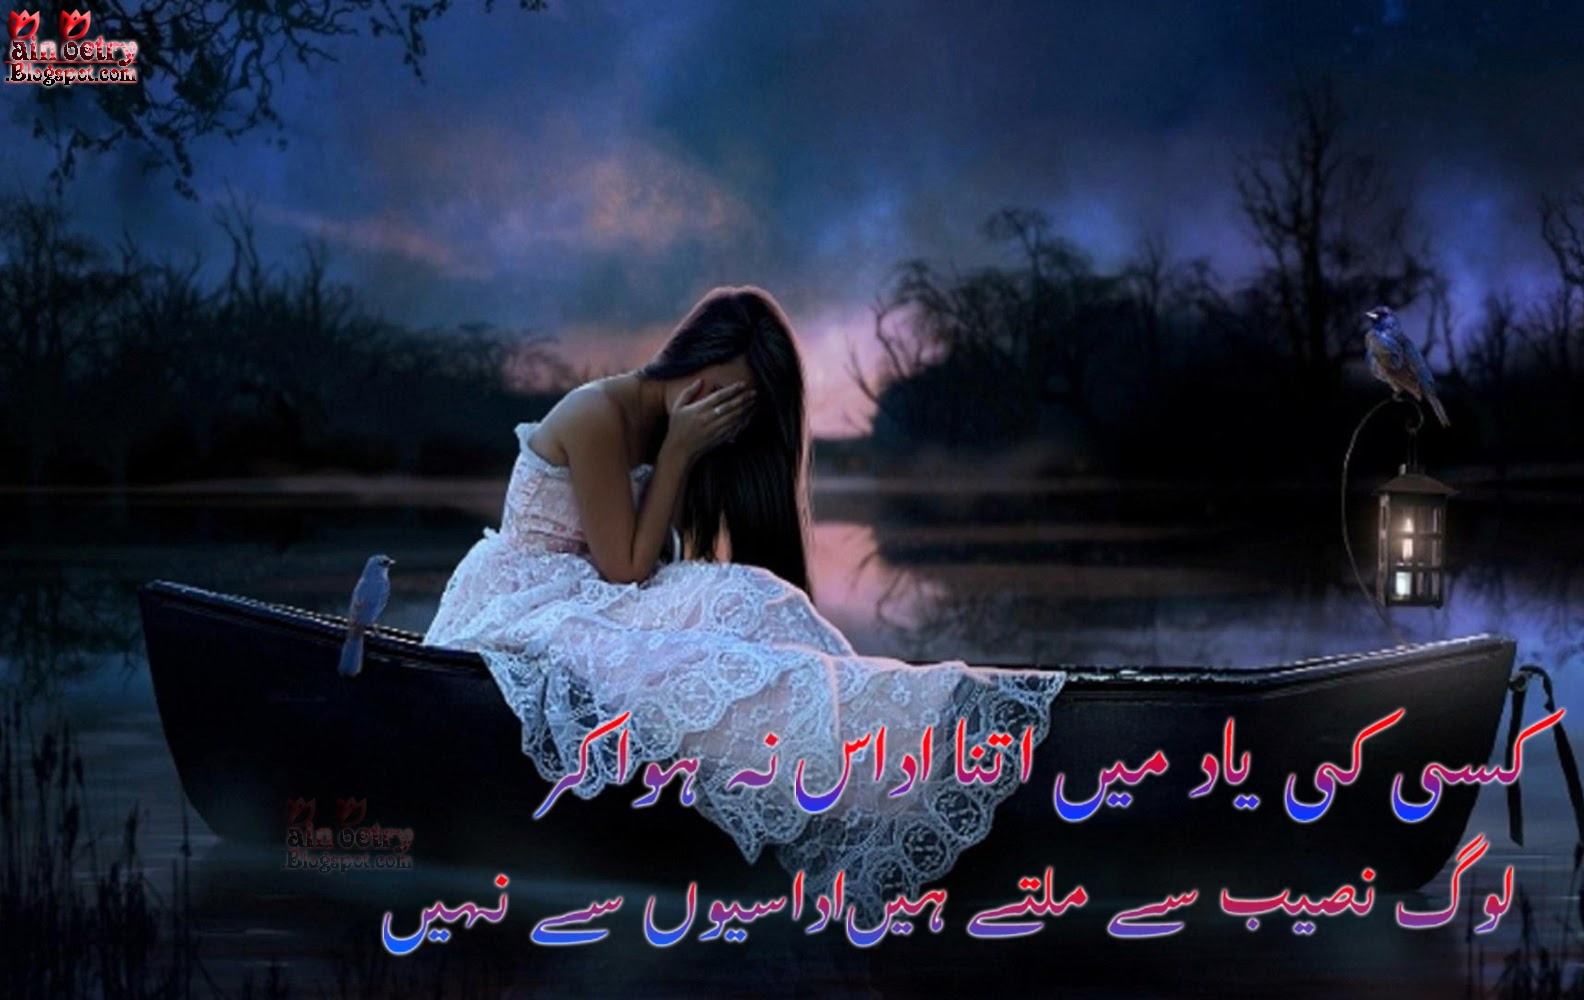 Sad-Girl-Wallpaper-In-Love-Poetry-Kisi-Ki-Yaad-Mein-Itna-Udaas-Naan-Hua-Ker-Loog-Naseeb-Sy-Milty-Hein_Udassioon-Sy-Nahian-Image-HD-Wide